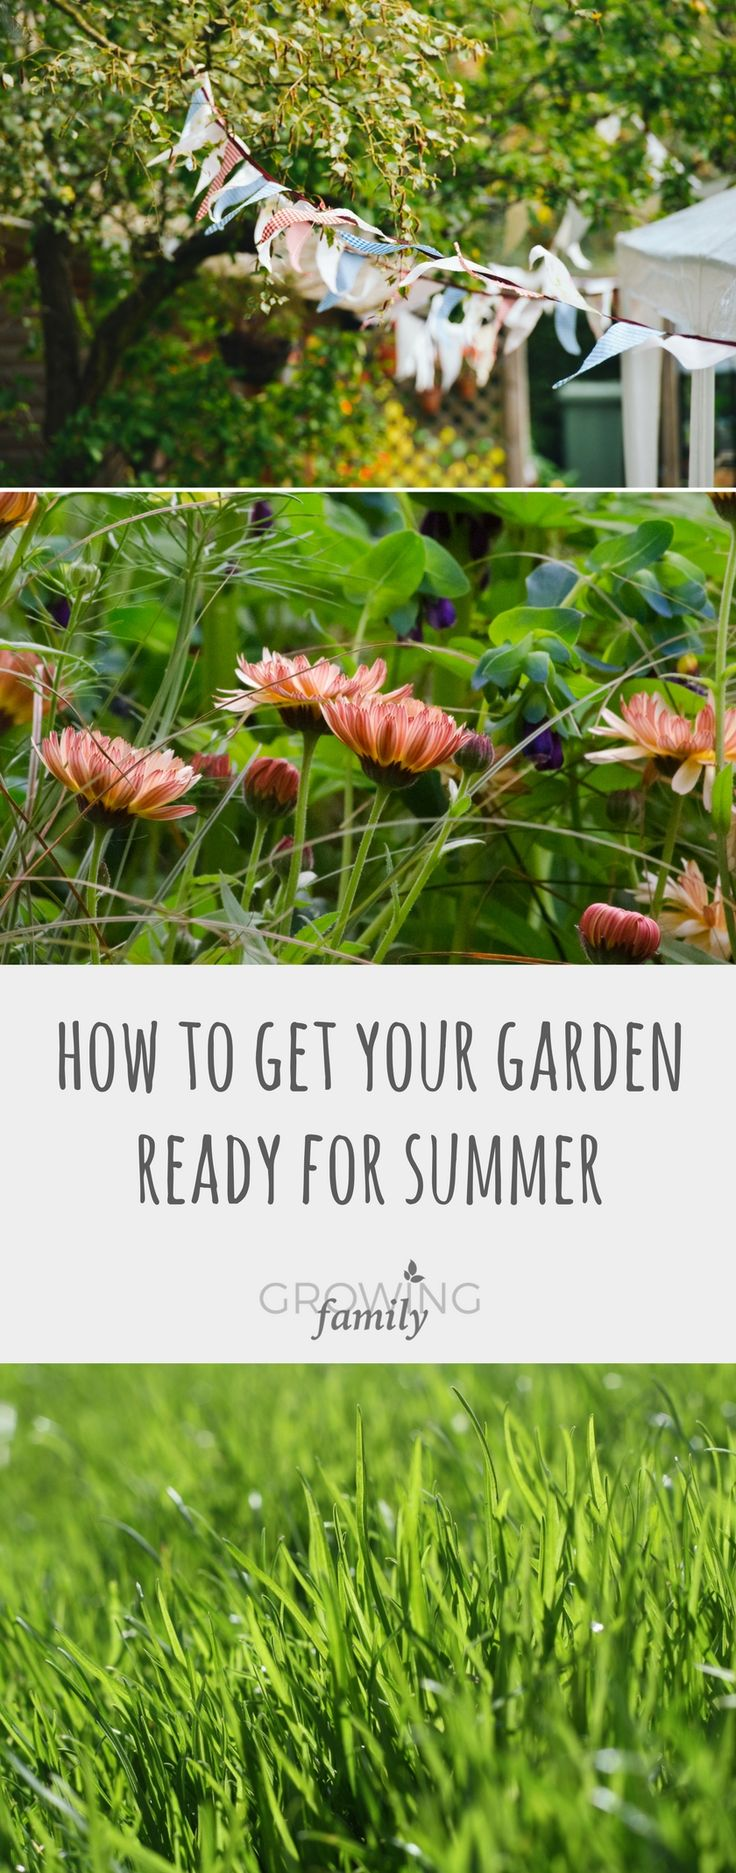 Is your garden ready for summer? Check out these jobs to tackle now, so that you can sit back and enjoy the view when summer arrives!